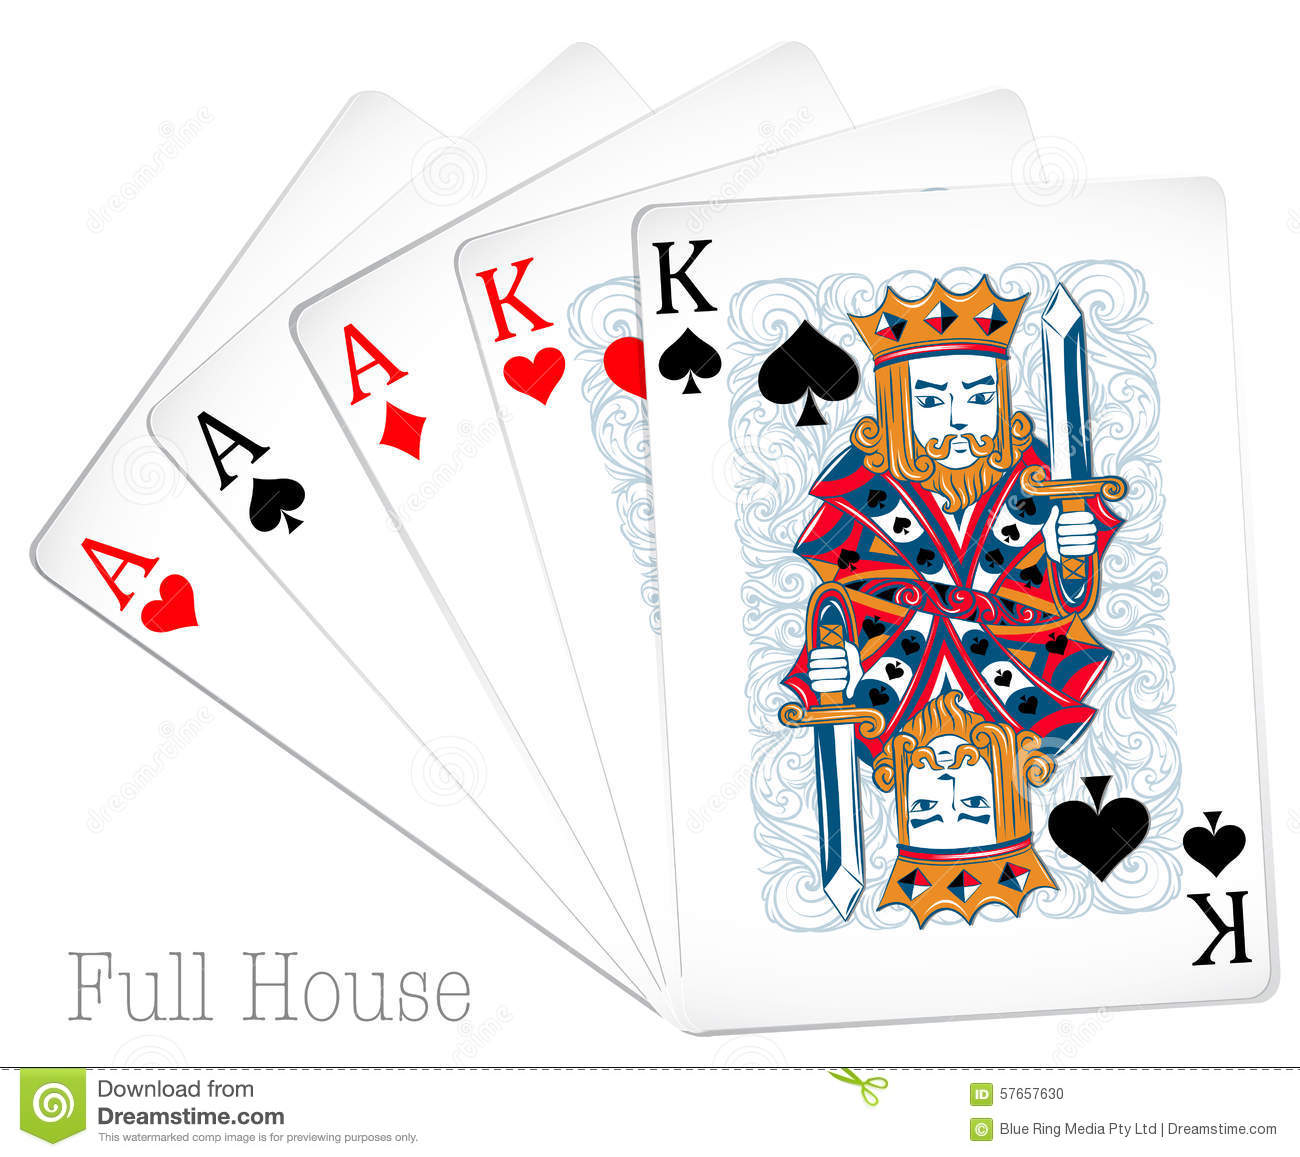 full house in cards